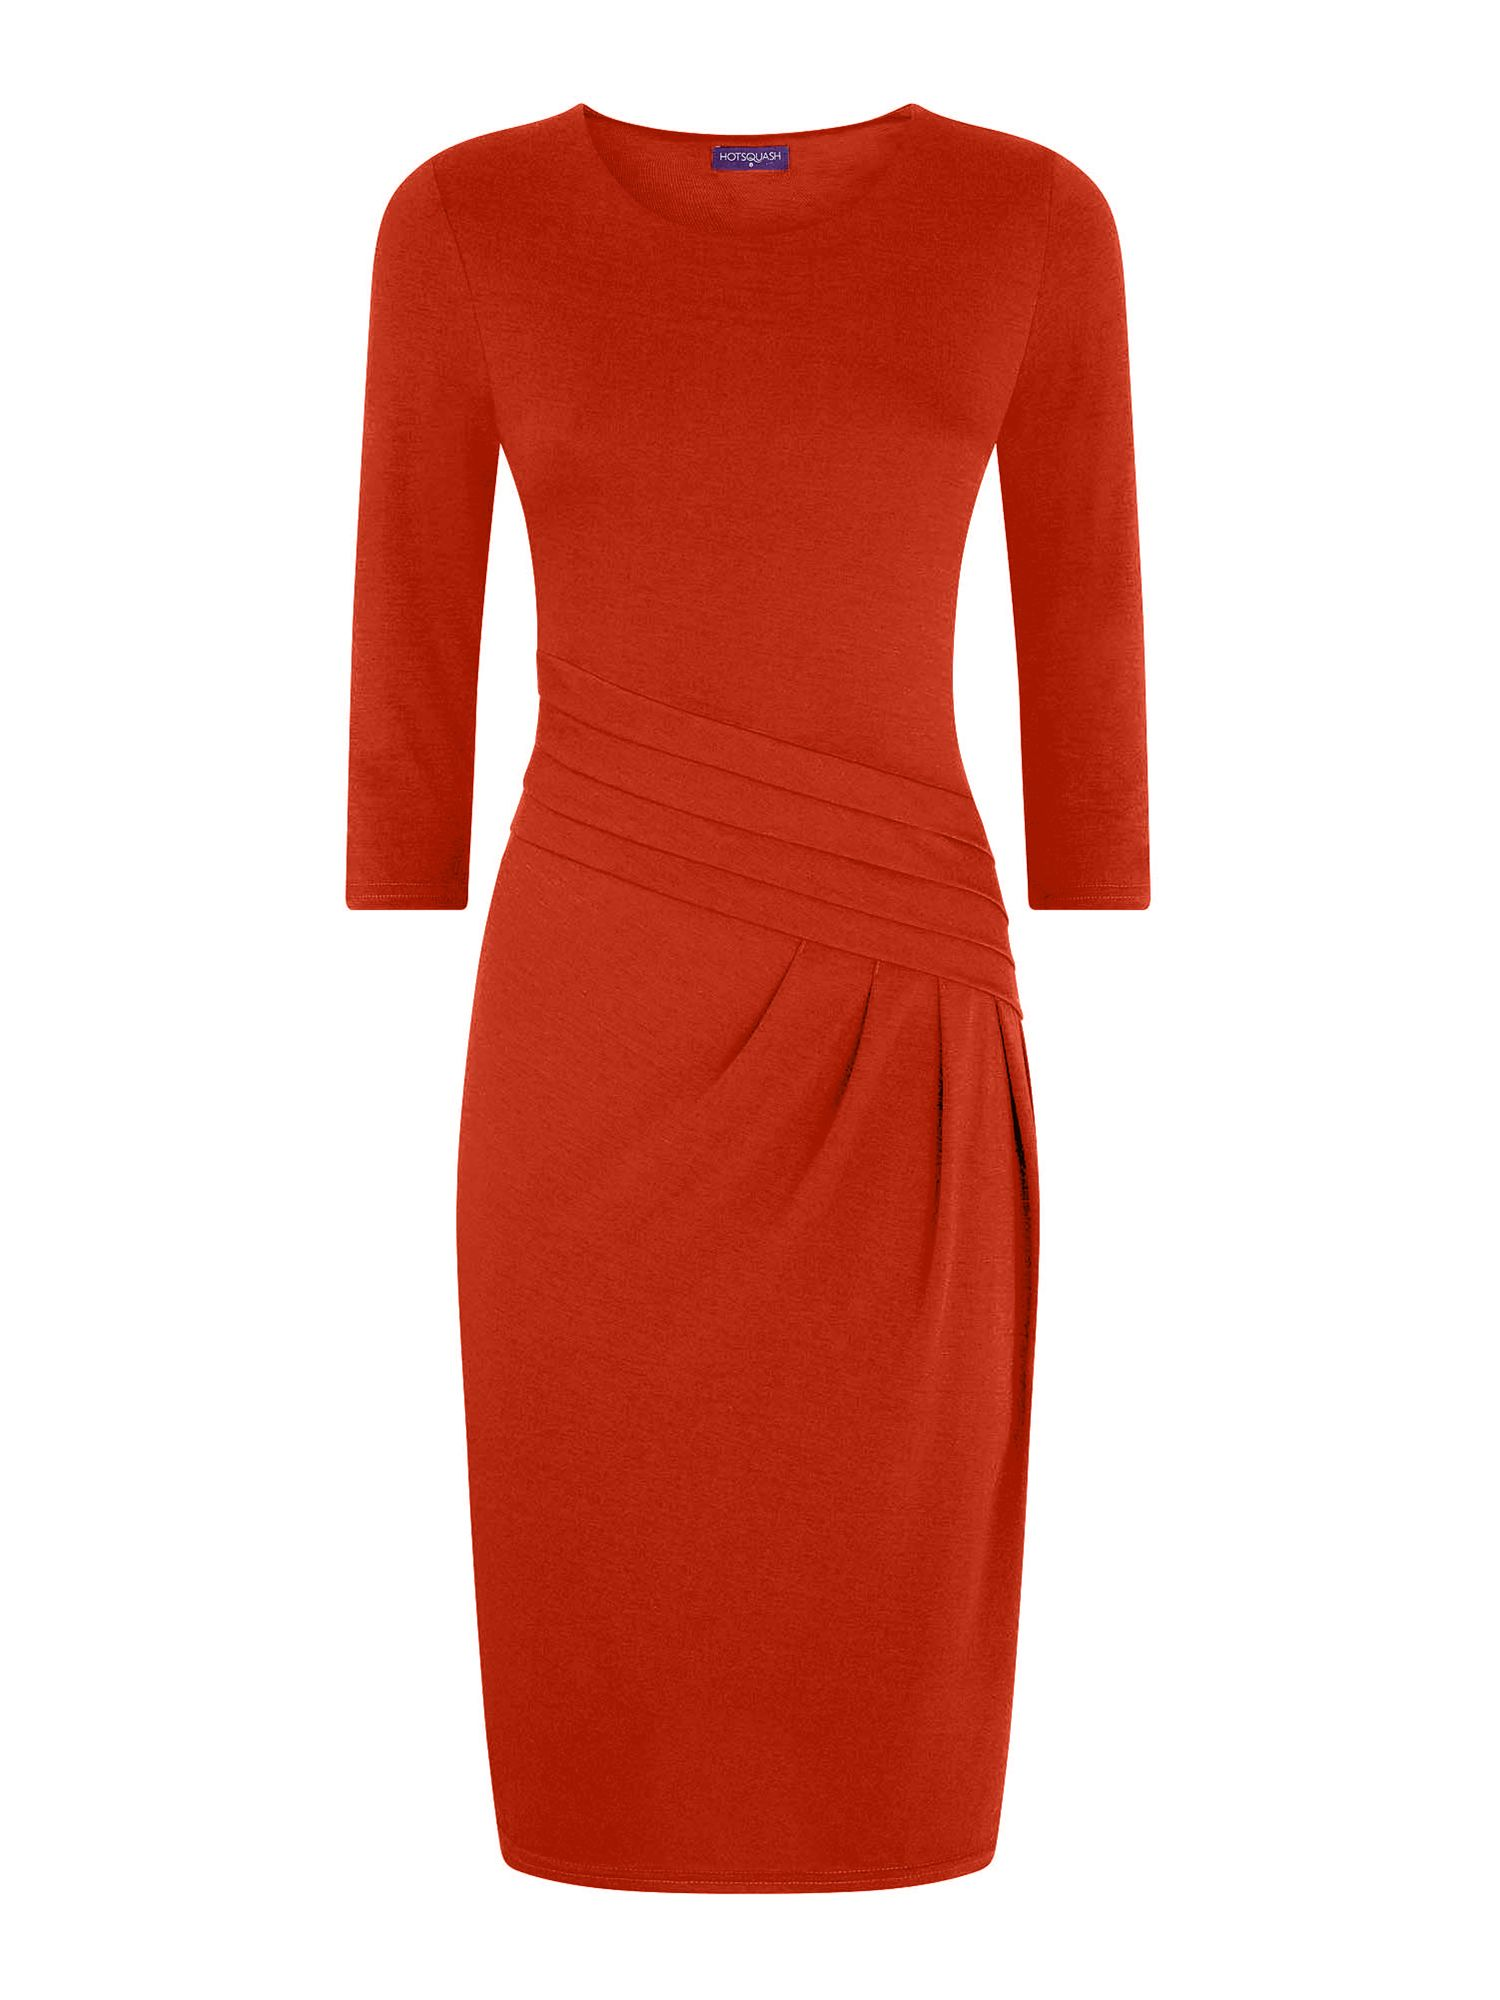 HotSquash Long Sleeved Knee length Dress, Orange